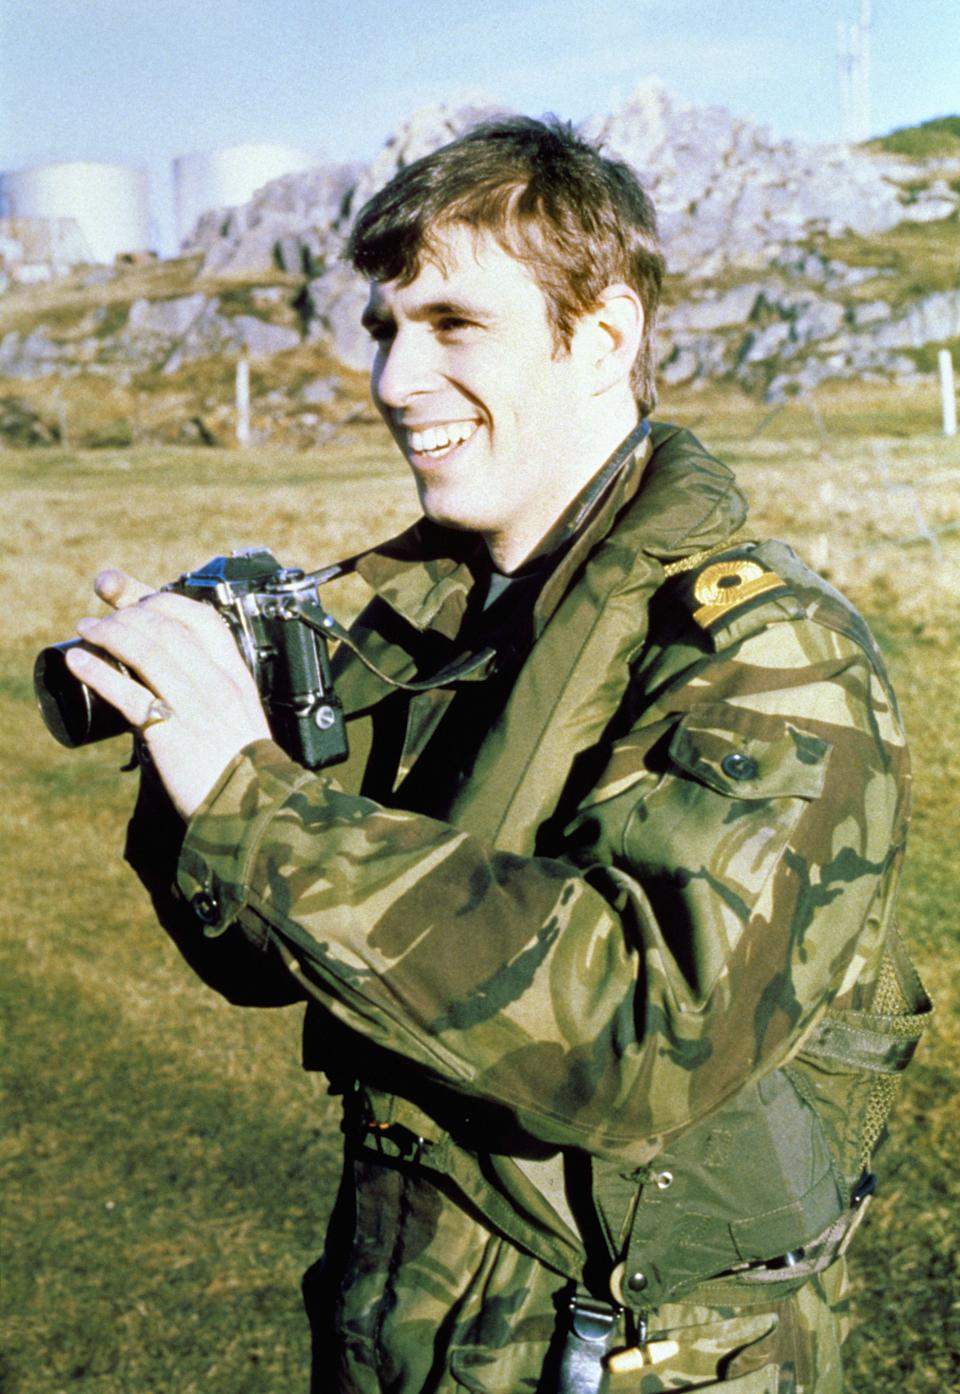 Prince Andrew (later the Duke of York) in the Falklands with a camera.   (Photo by PA Images via Getty Images)